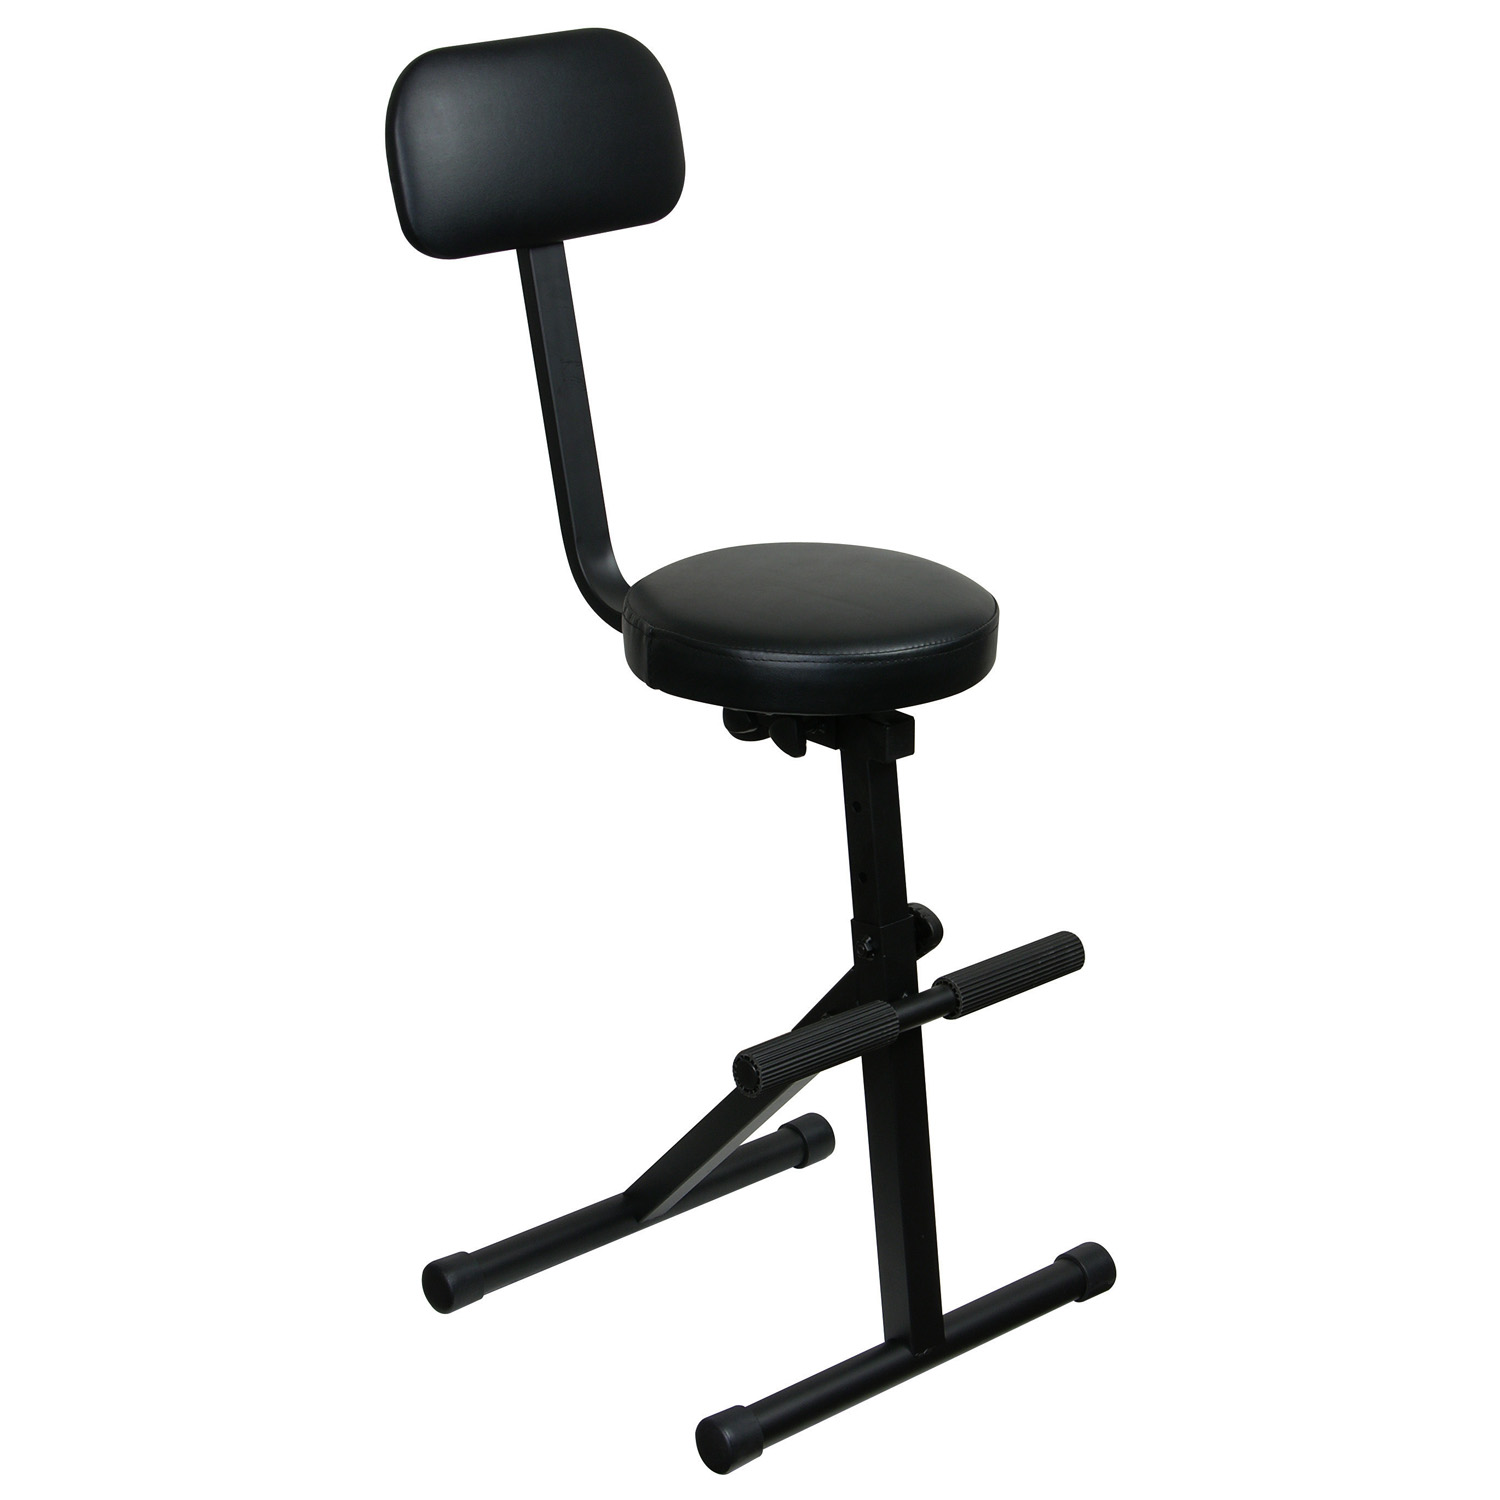 Black adjustable dj chair